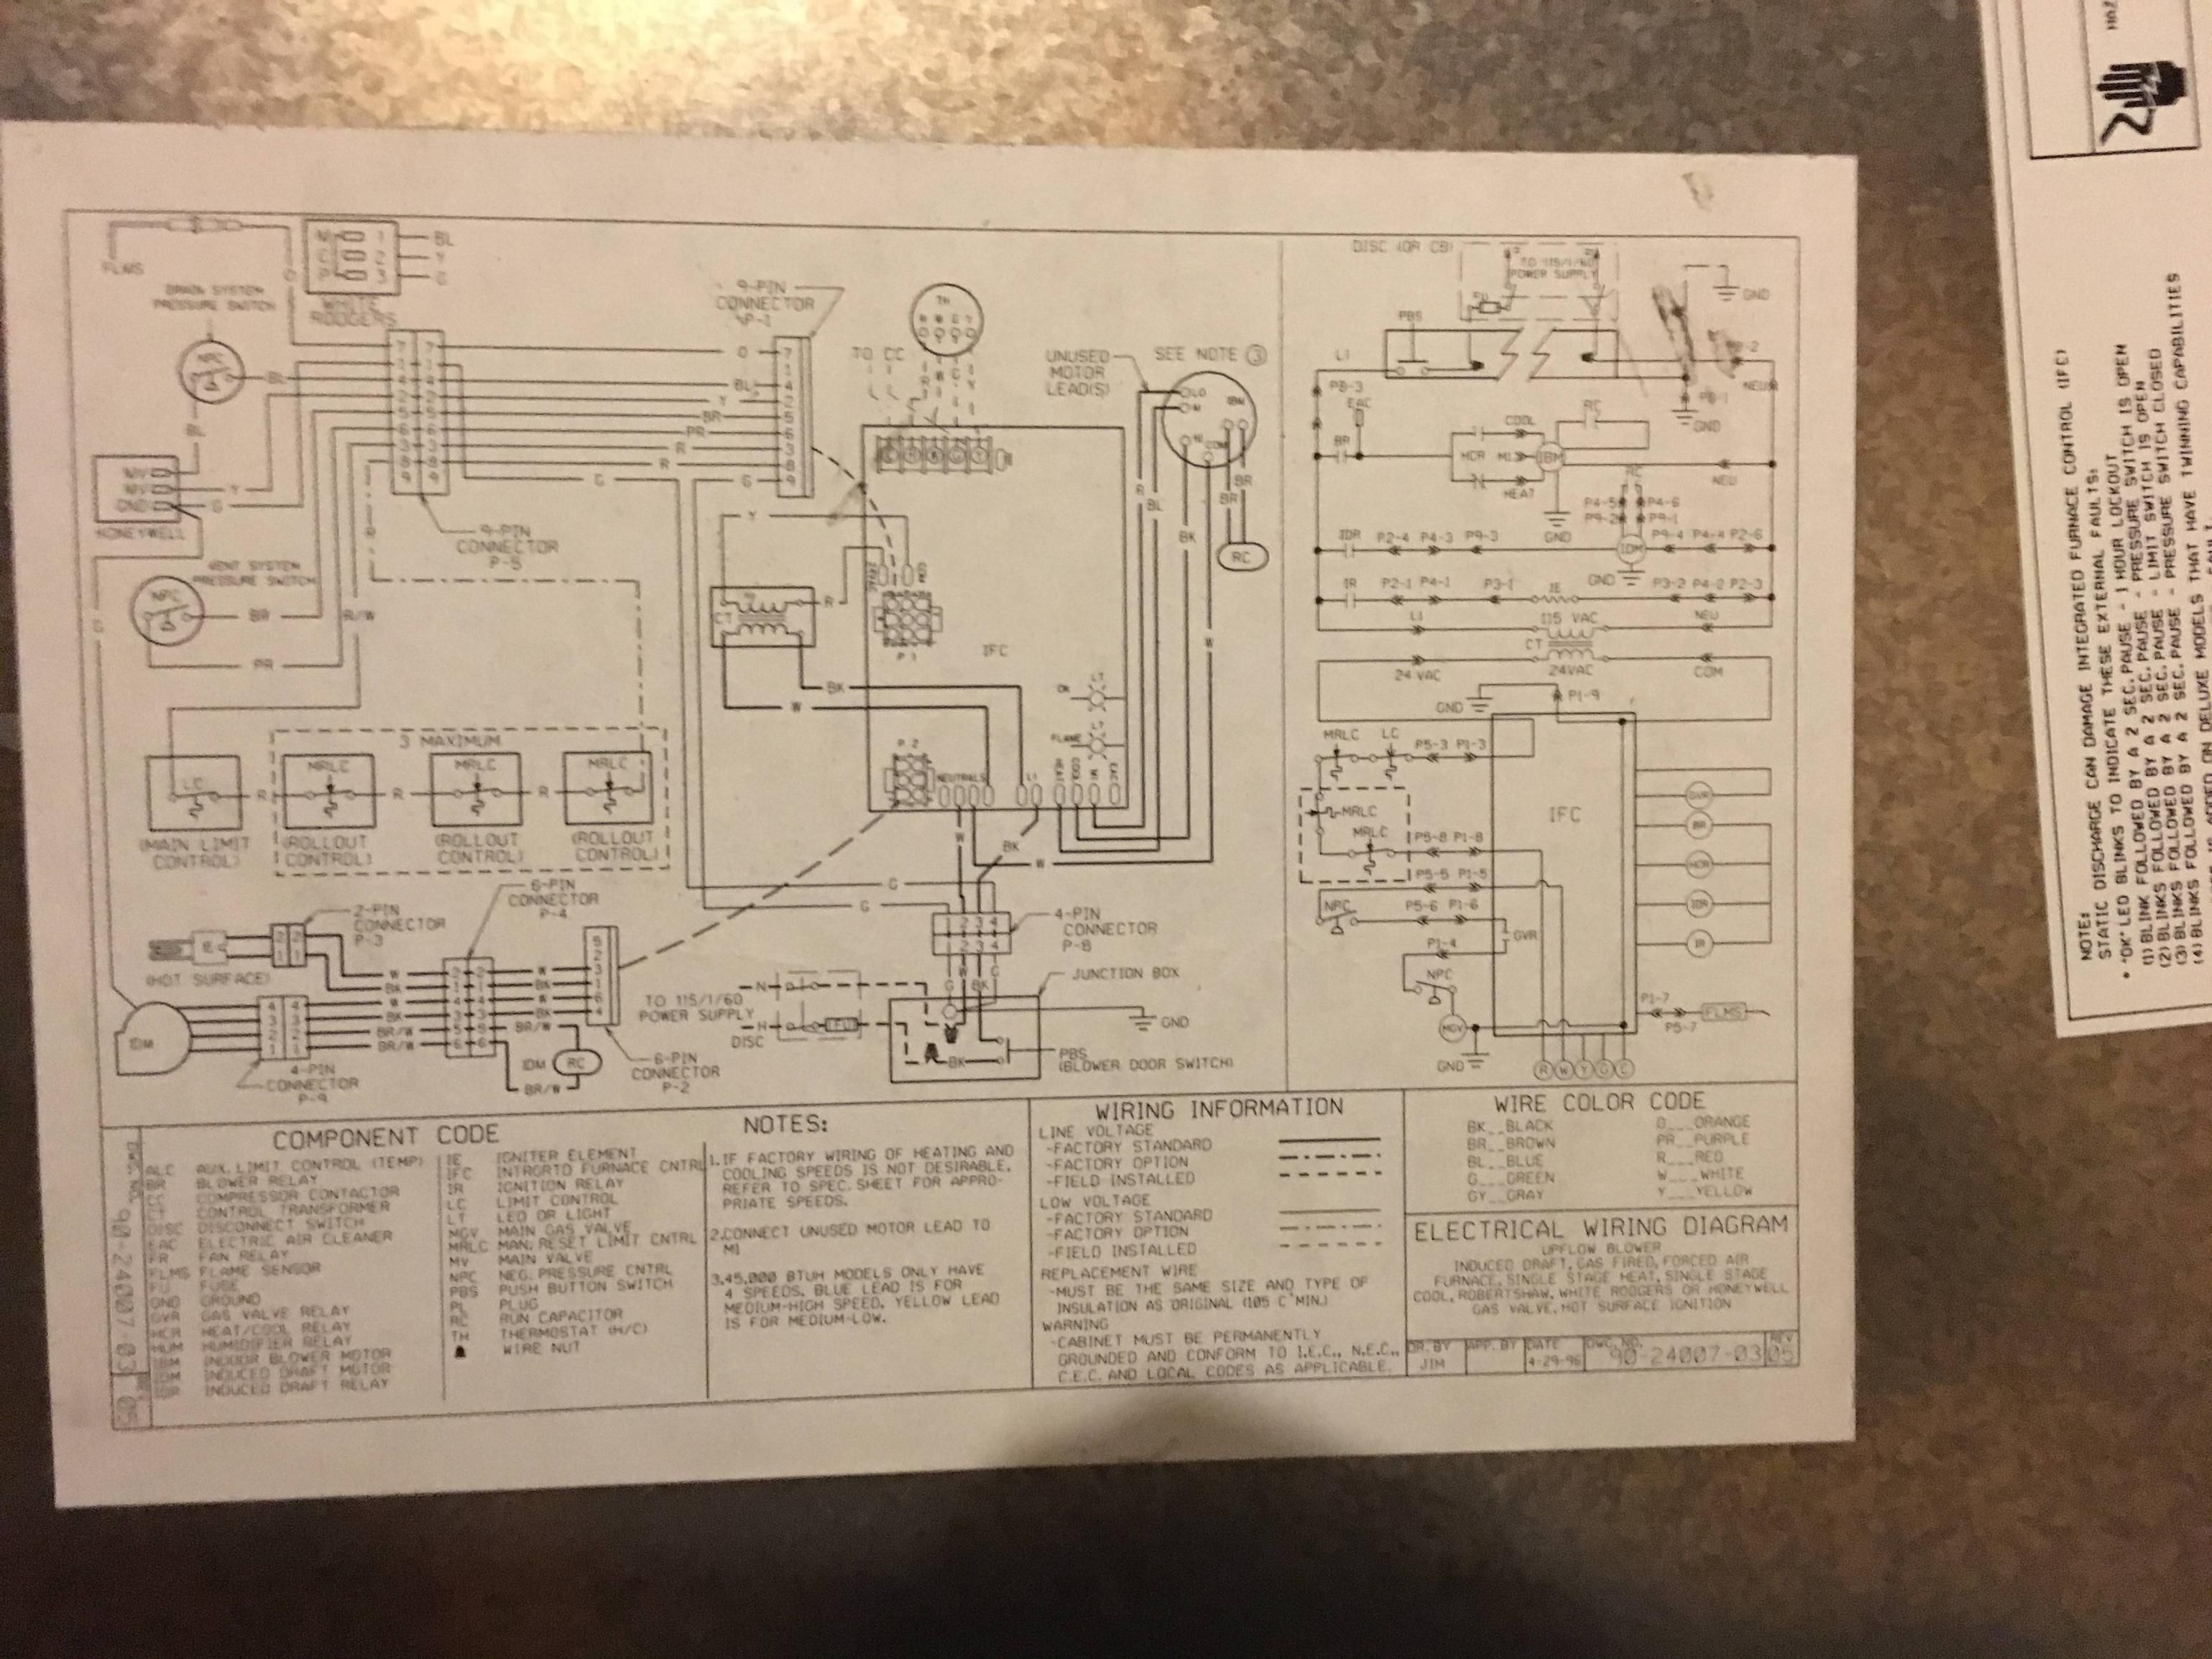 small resolution of first company air handler wiring diagram question about wiring rh shirogadget com goodman air handler wiring diagrams trane air handler wiring diagrams